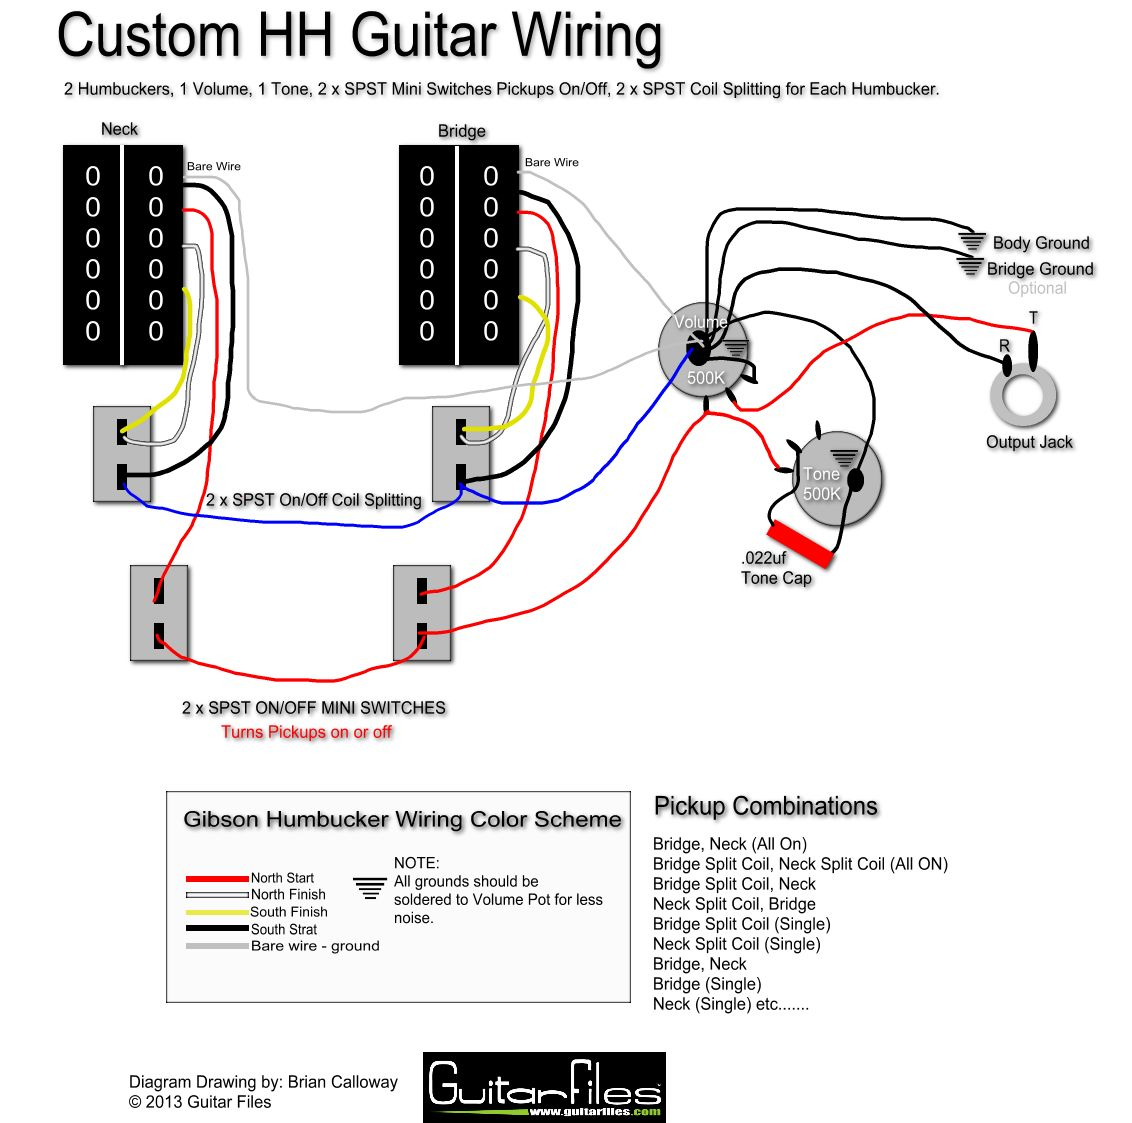 custom hh wiring diagram with spst coil splitting and spst switching rh pinterest com 3 Pickup Guitar Wiring Guitar Pickup Wiring